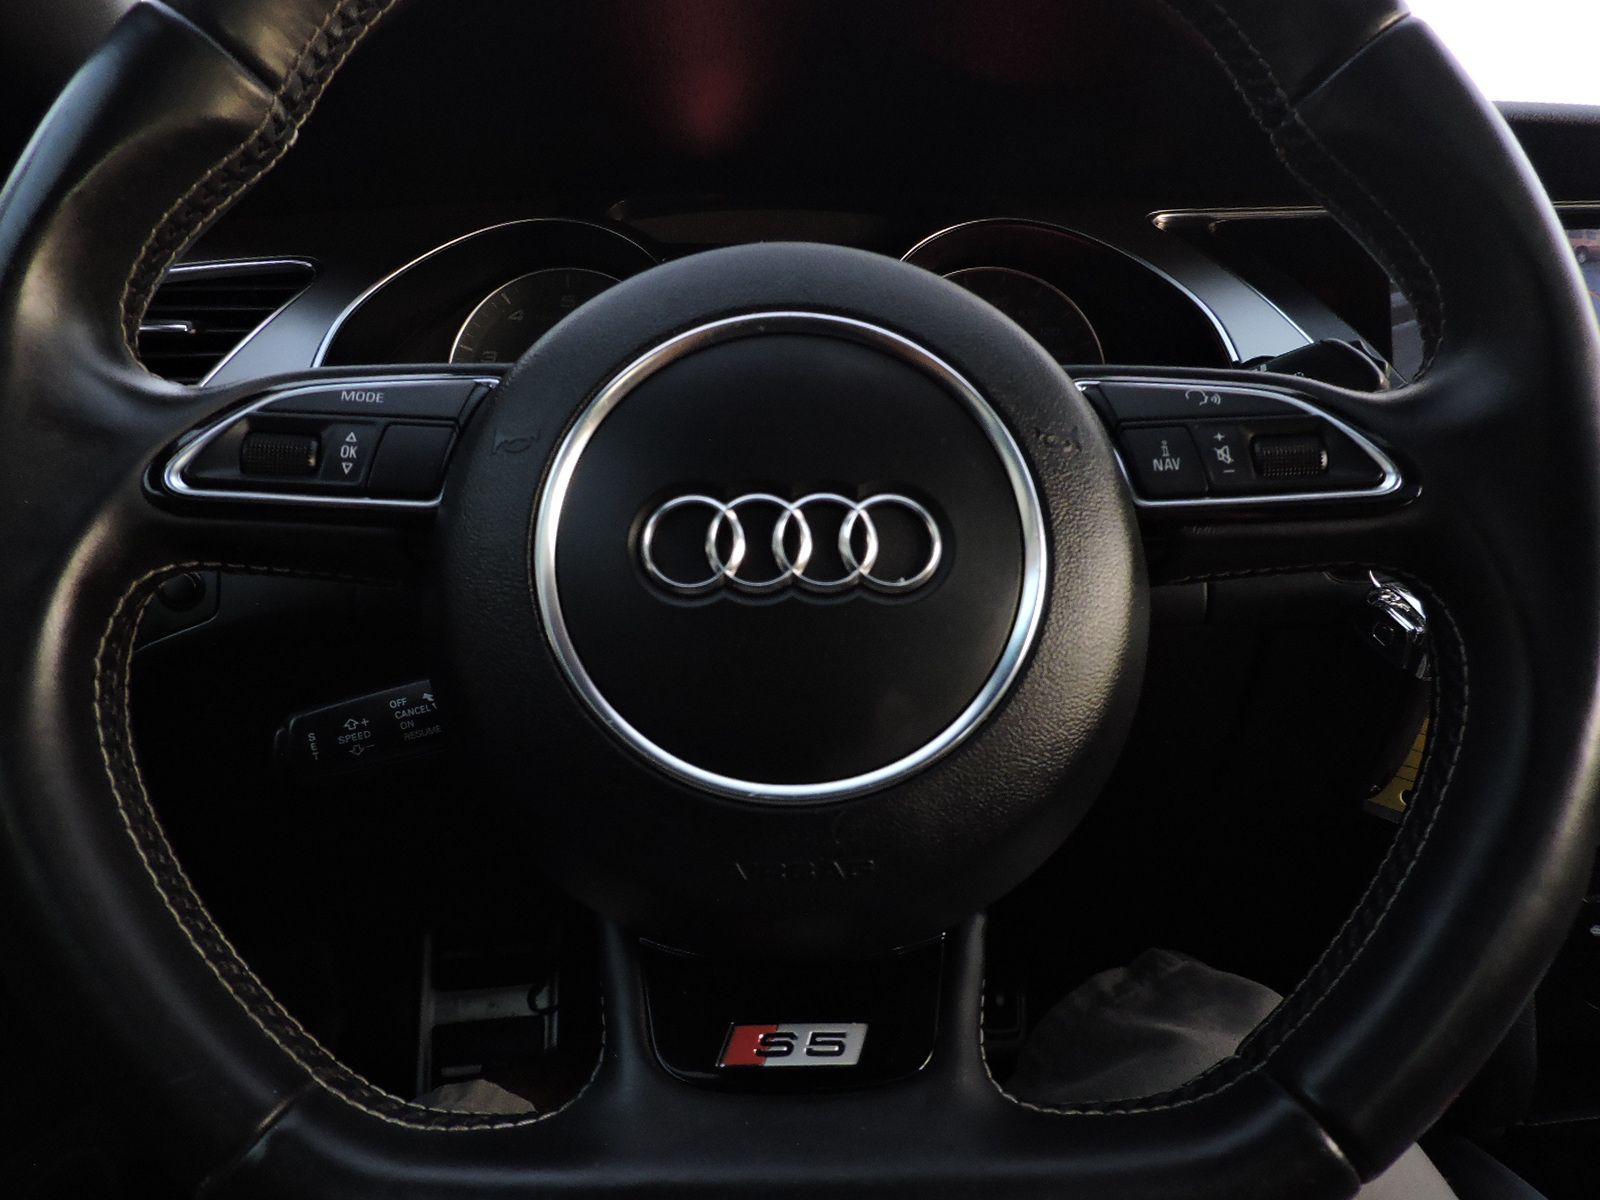 2013 Audi S5 Coupe 6 Speed Premium Plus AWD